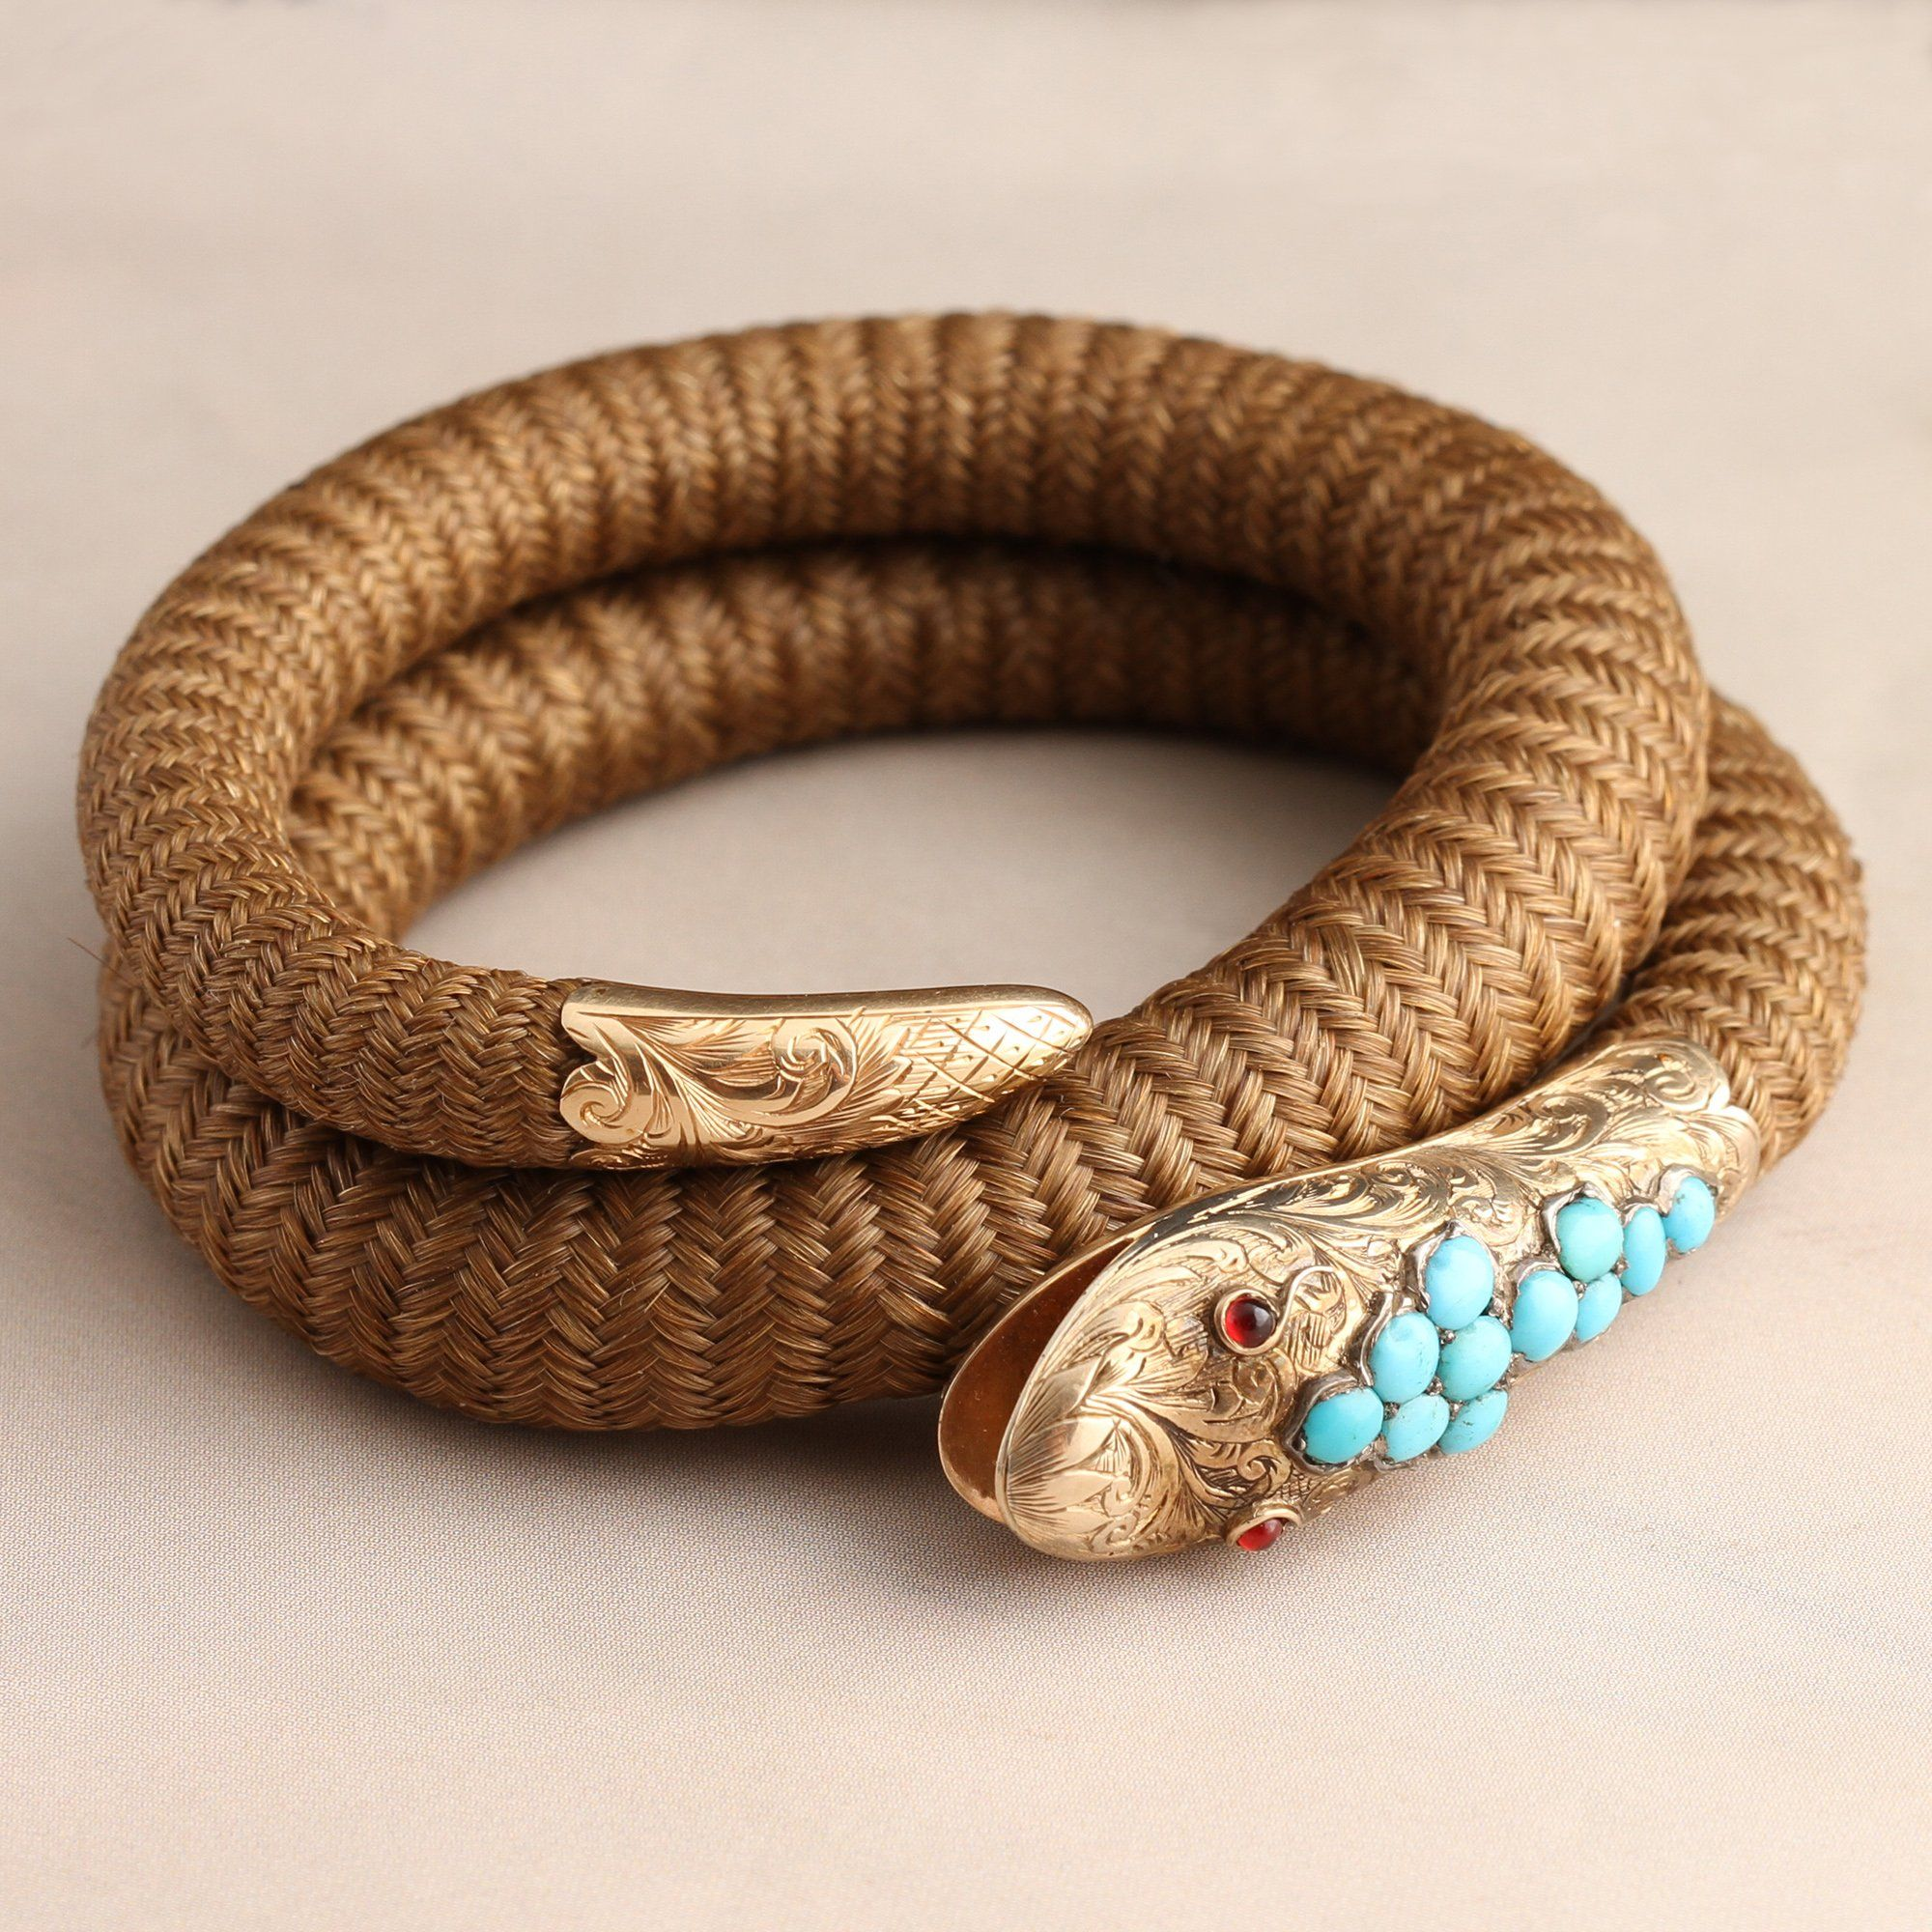 Detail of Victorian Coiled Serpent Hair Bangle with Garnets and Turquoise